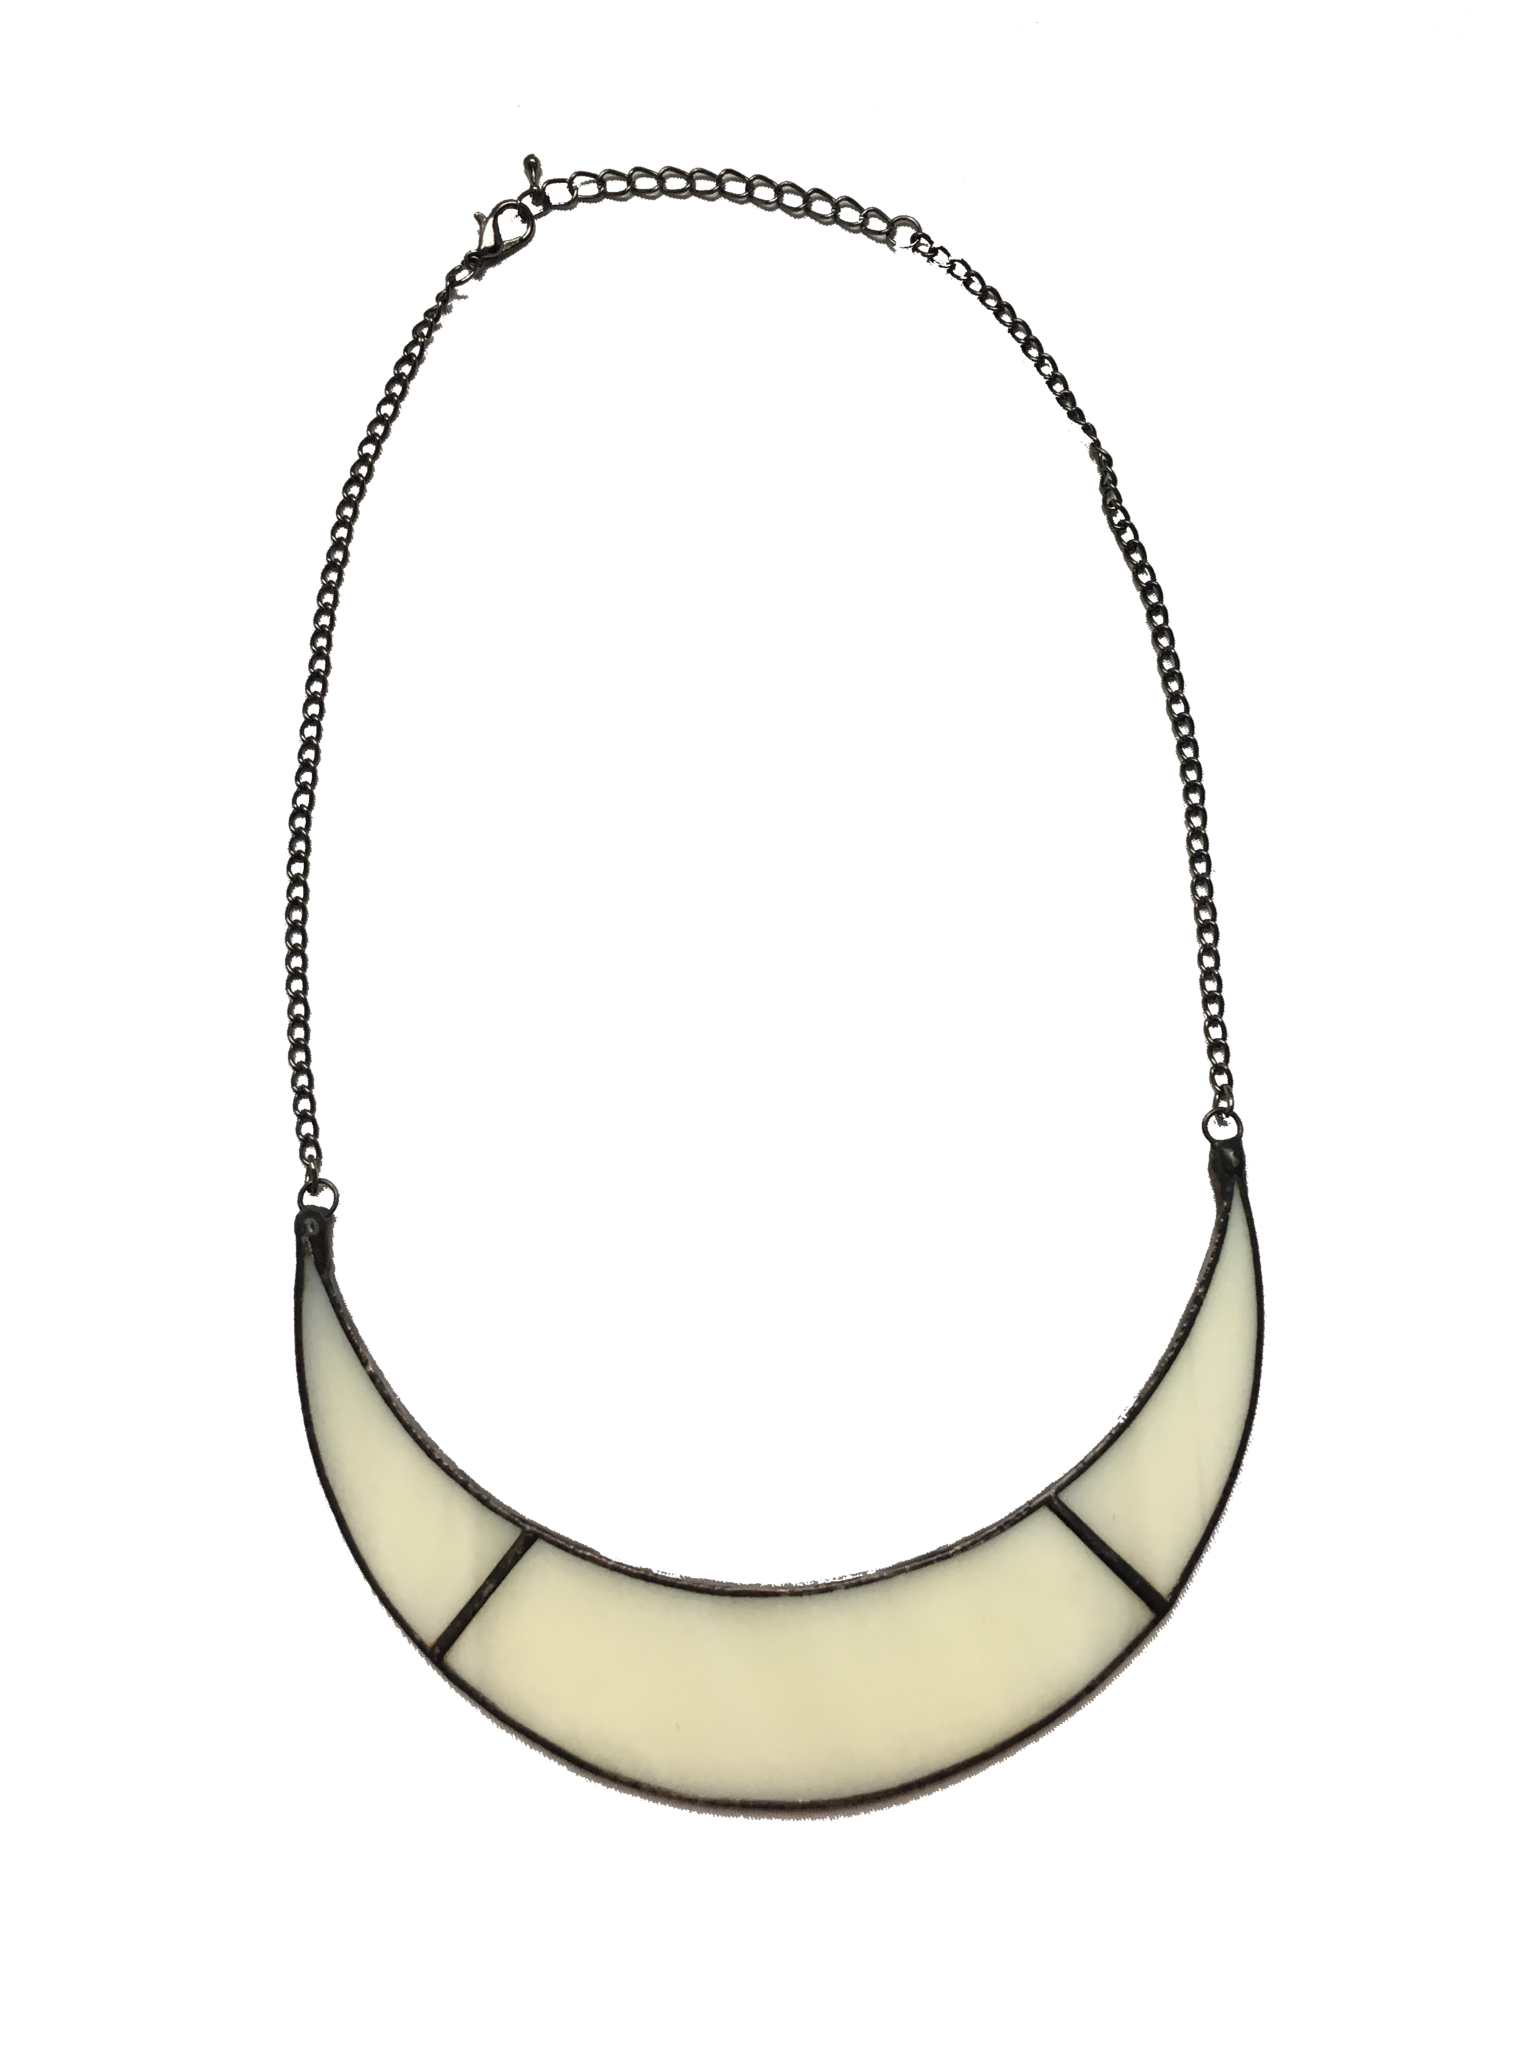 1536x2048 Handmade Jewelry White Glass Cresent Moon Necklace From Our